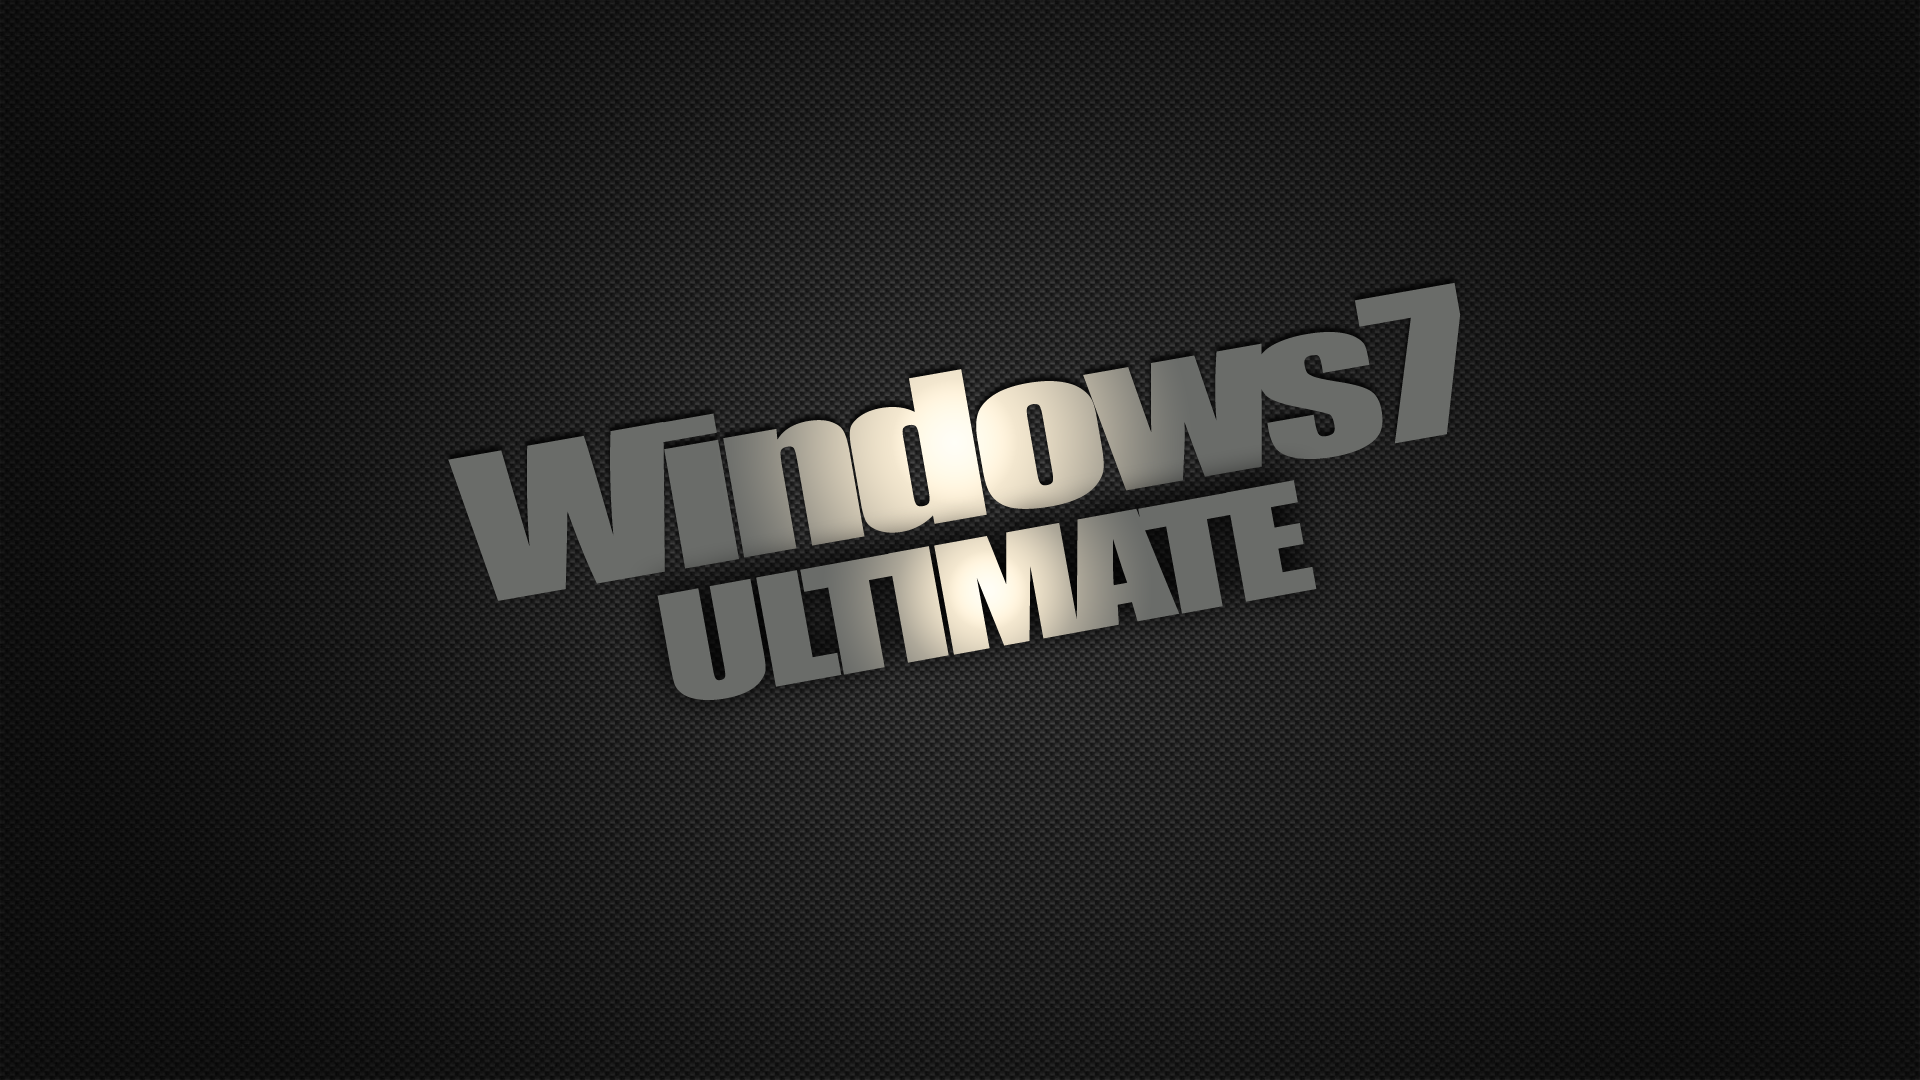 windows 7 ultimate dark desktop – hd black wallpaper | black